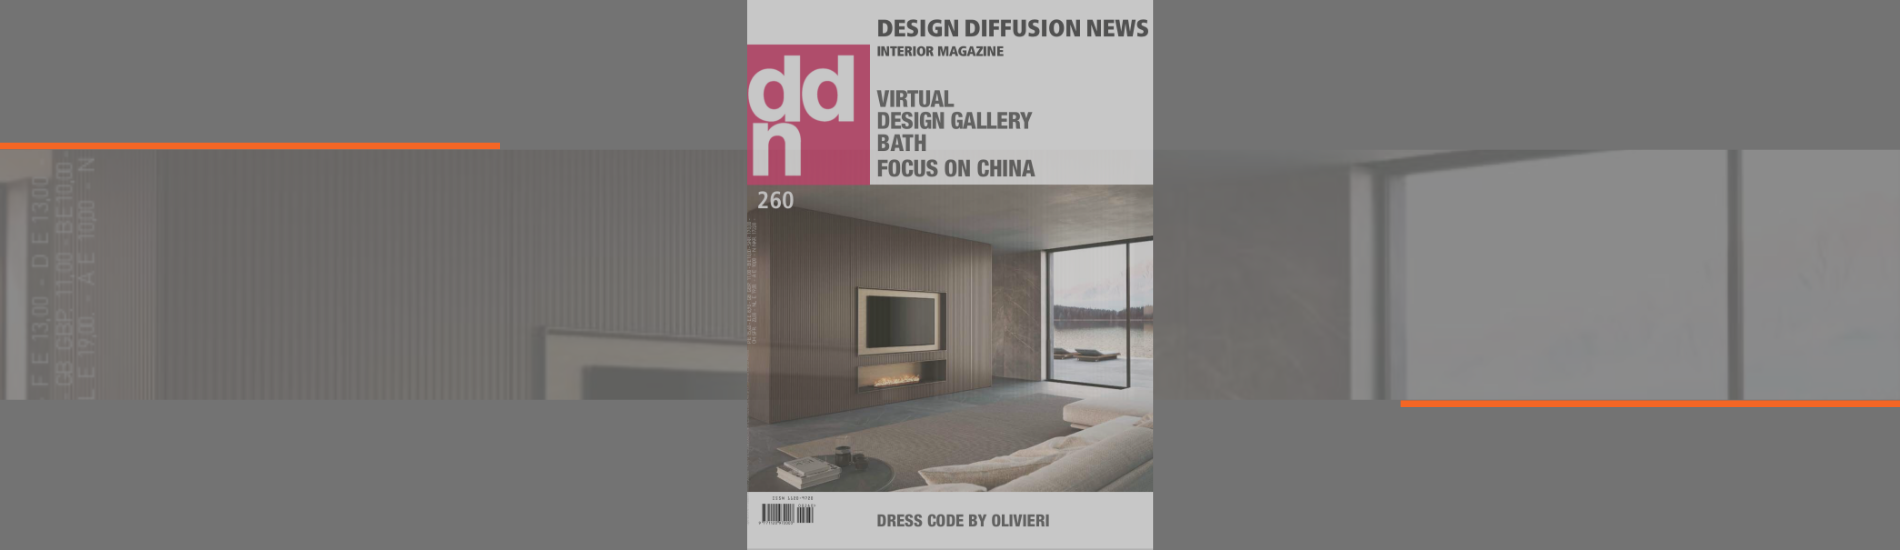 PUBLICATION: DESIGN DIFFUSION NEWS